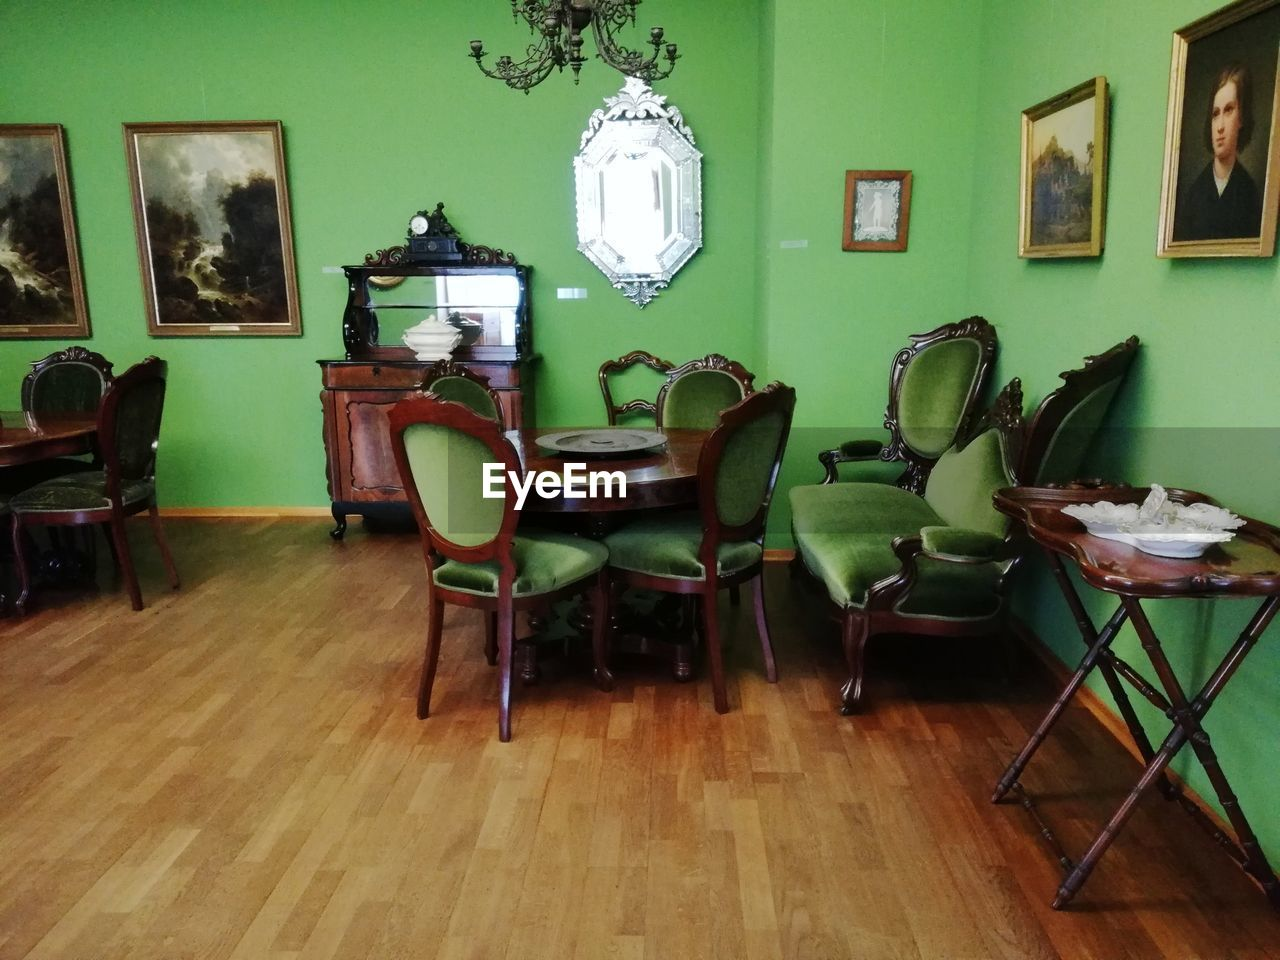 seat, chair, flooring, indoors, table, home interior, wood, hardwood floor, absence, no people, furniture, domestic room, frame, wall - building feature, lighting equipment, wood - material, living room, picture frame, green color, plant, electric lamp